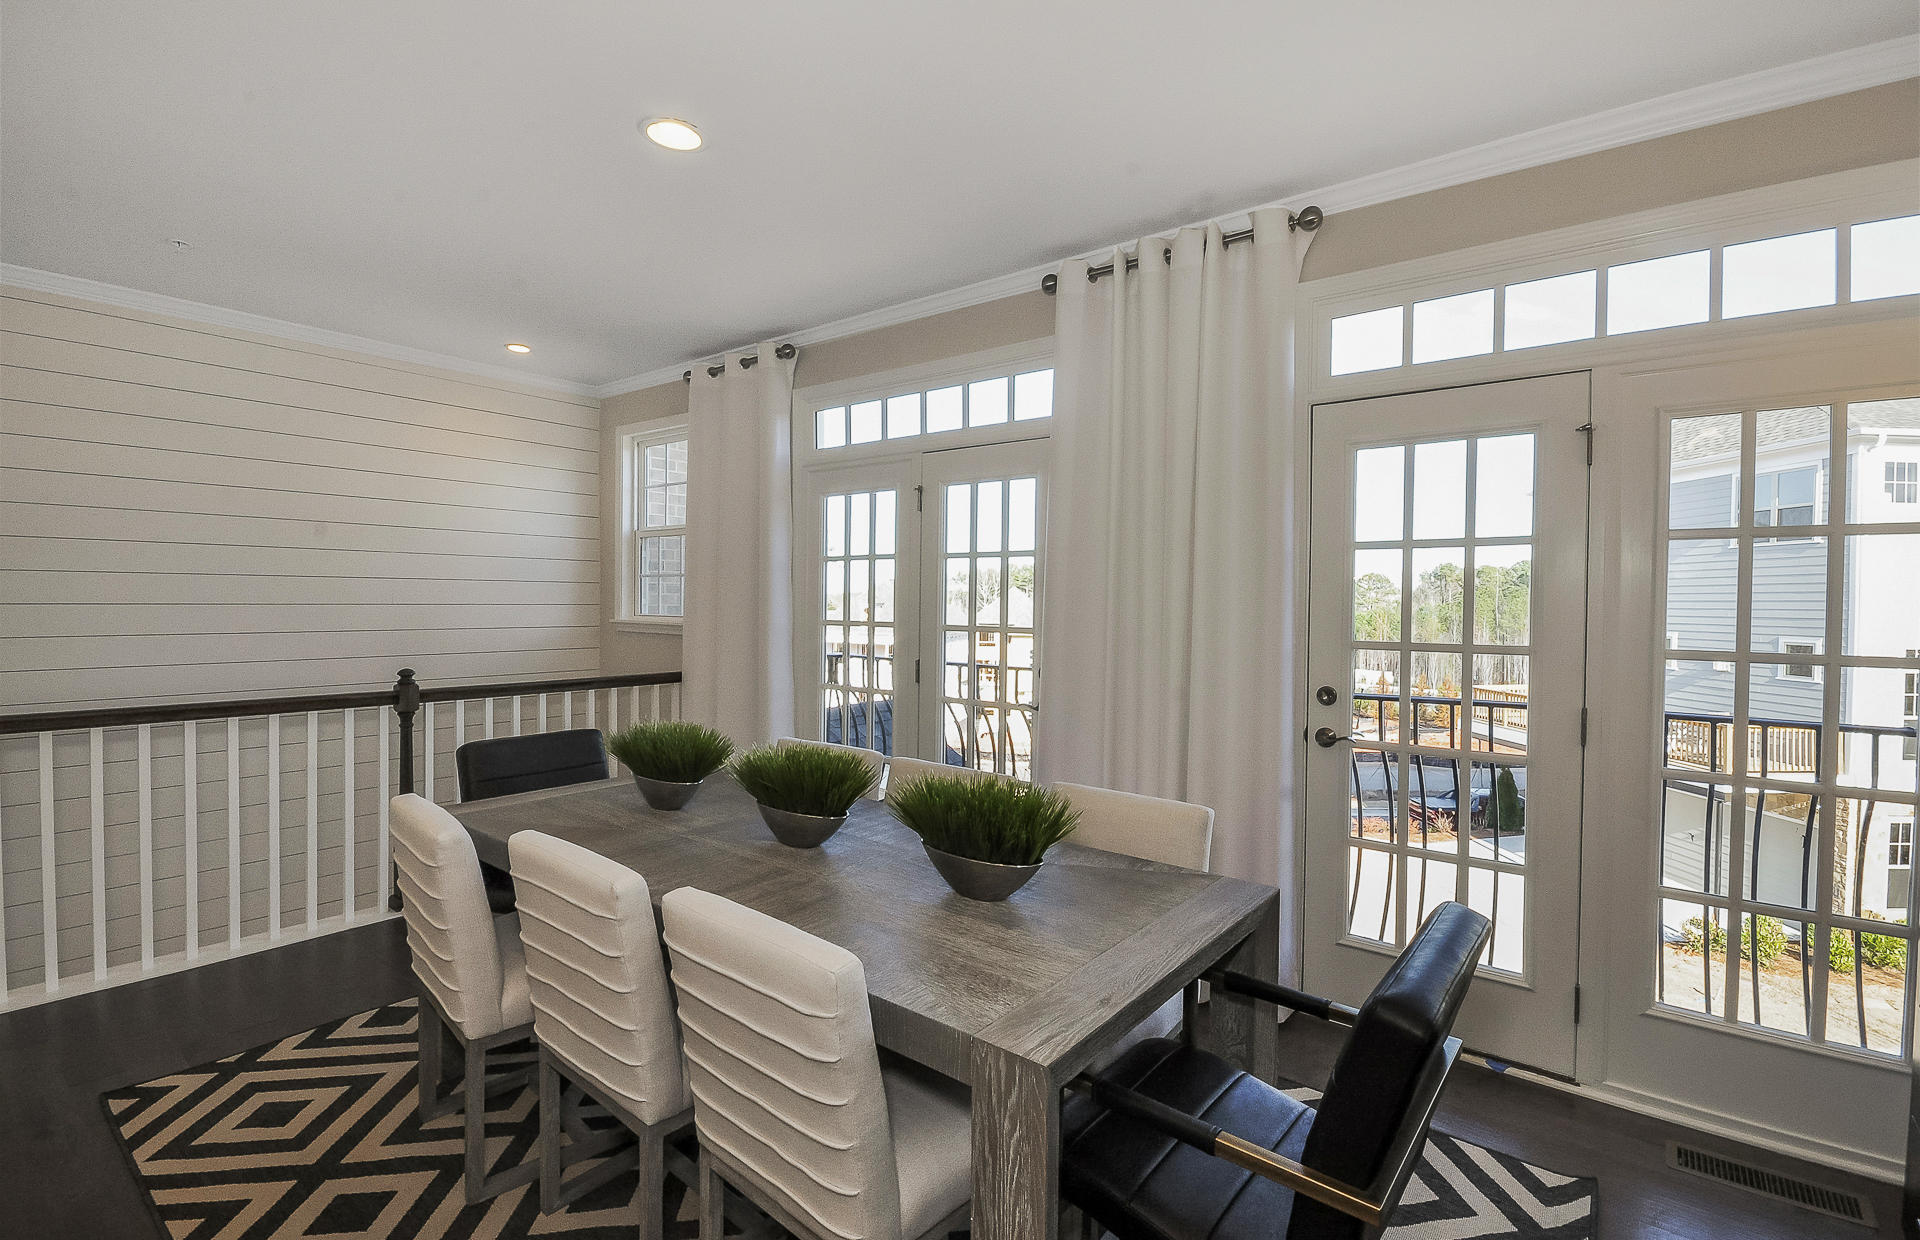 The Walk at Braeden by Pulte Homes image 1